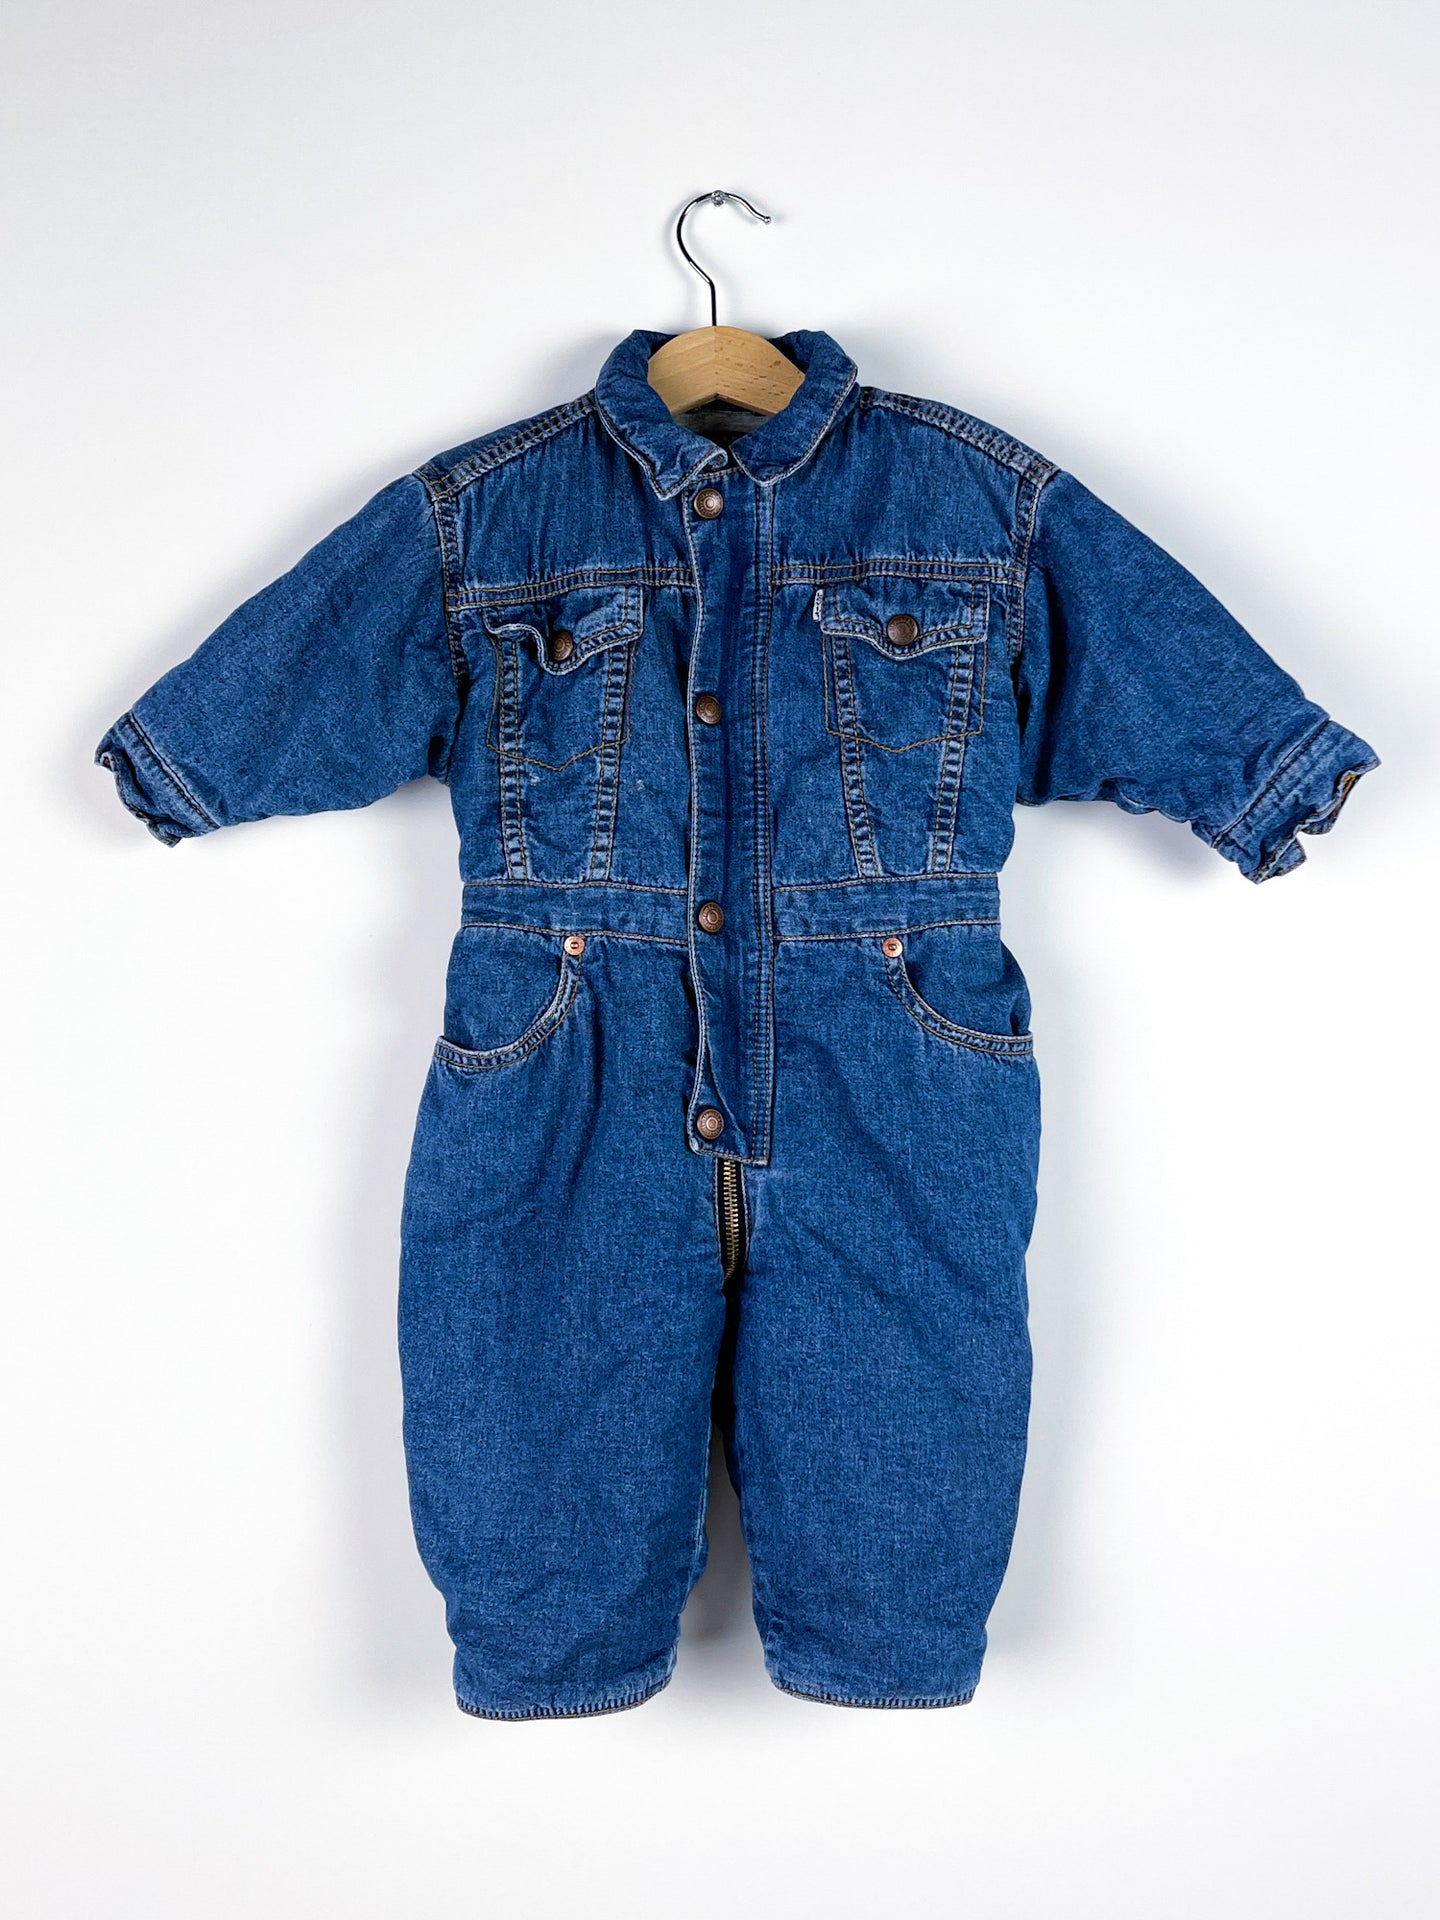 Vintage wintersuit size 9 - 12 M